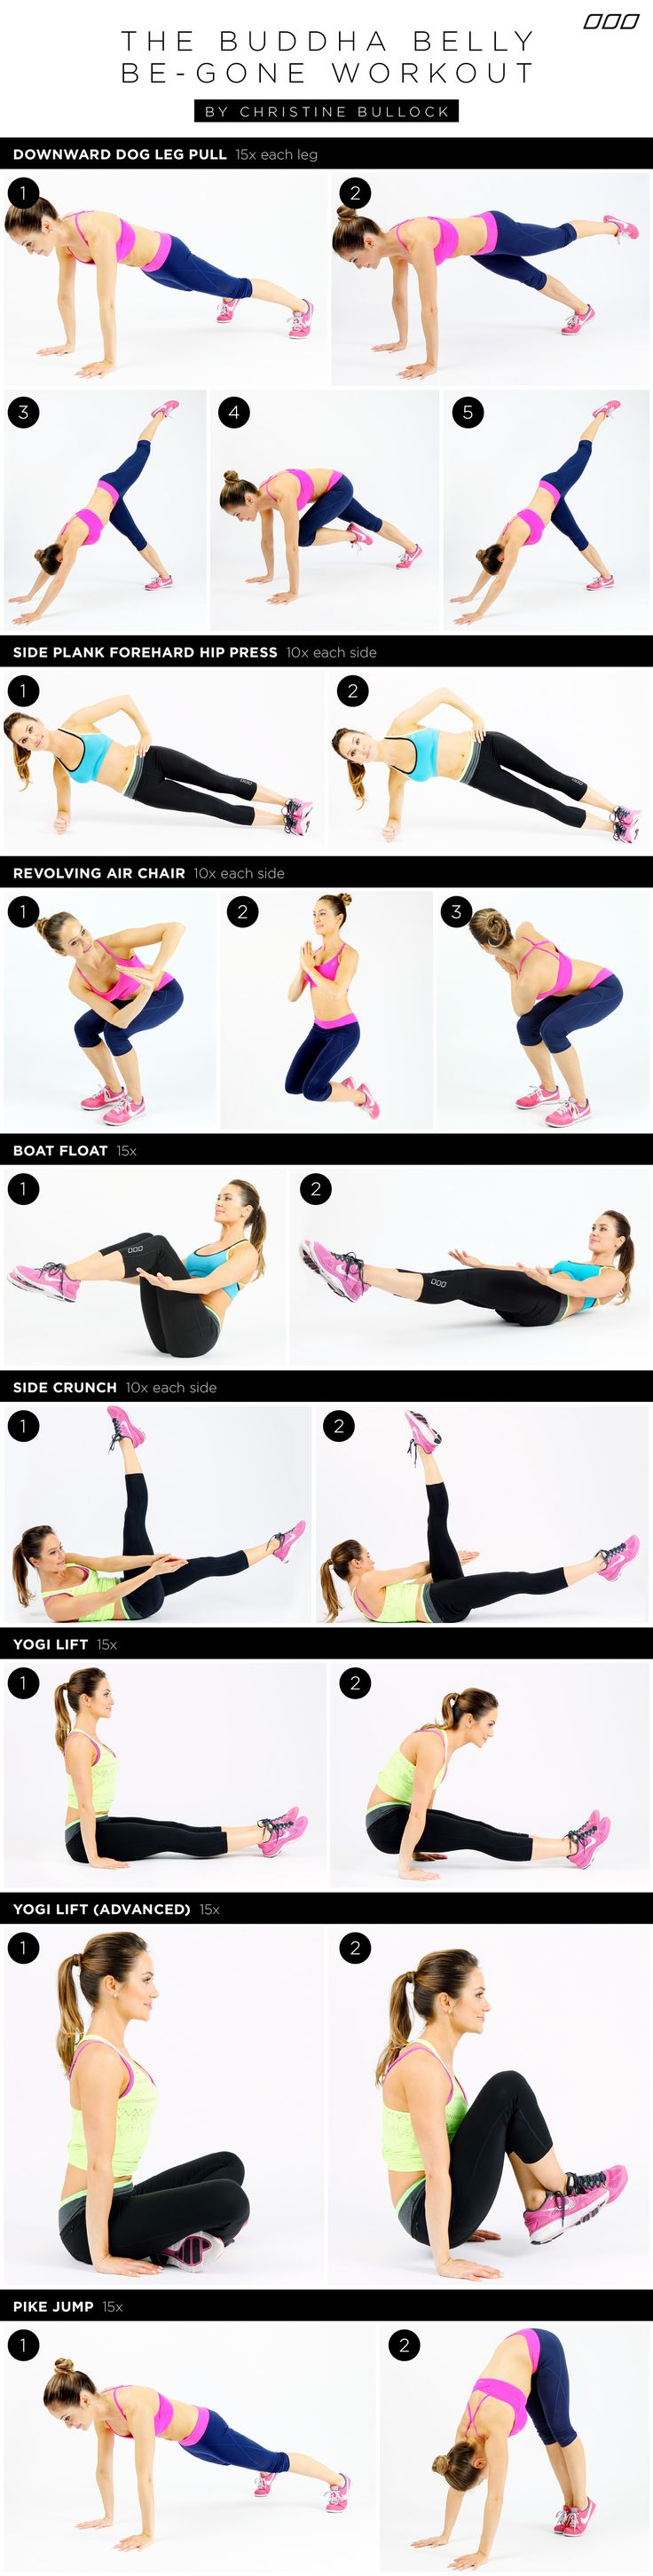 Great core workout!